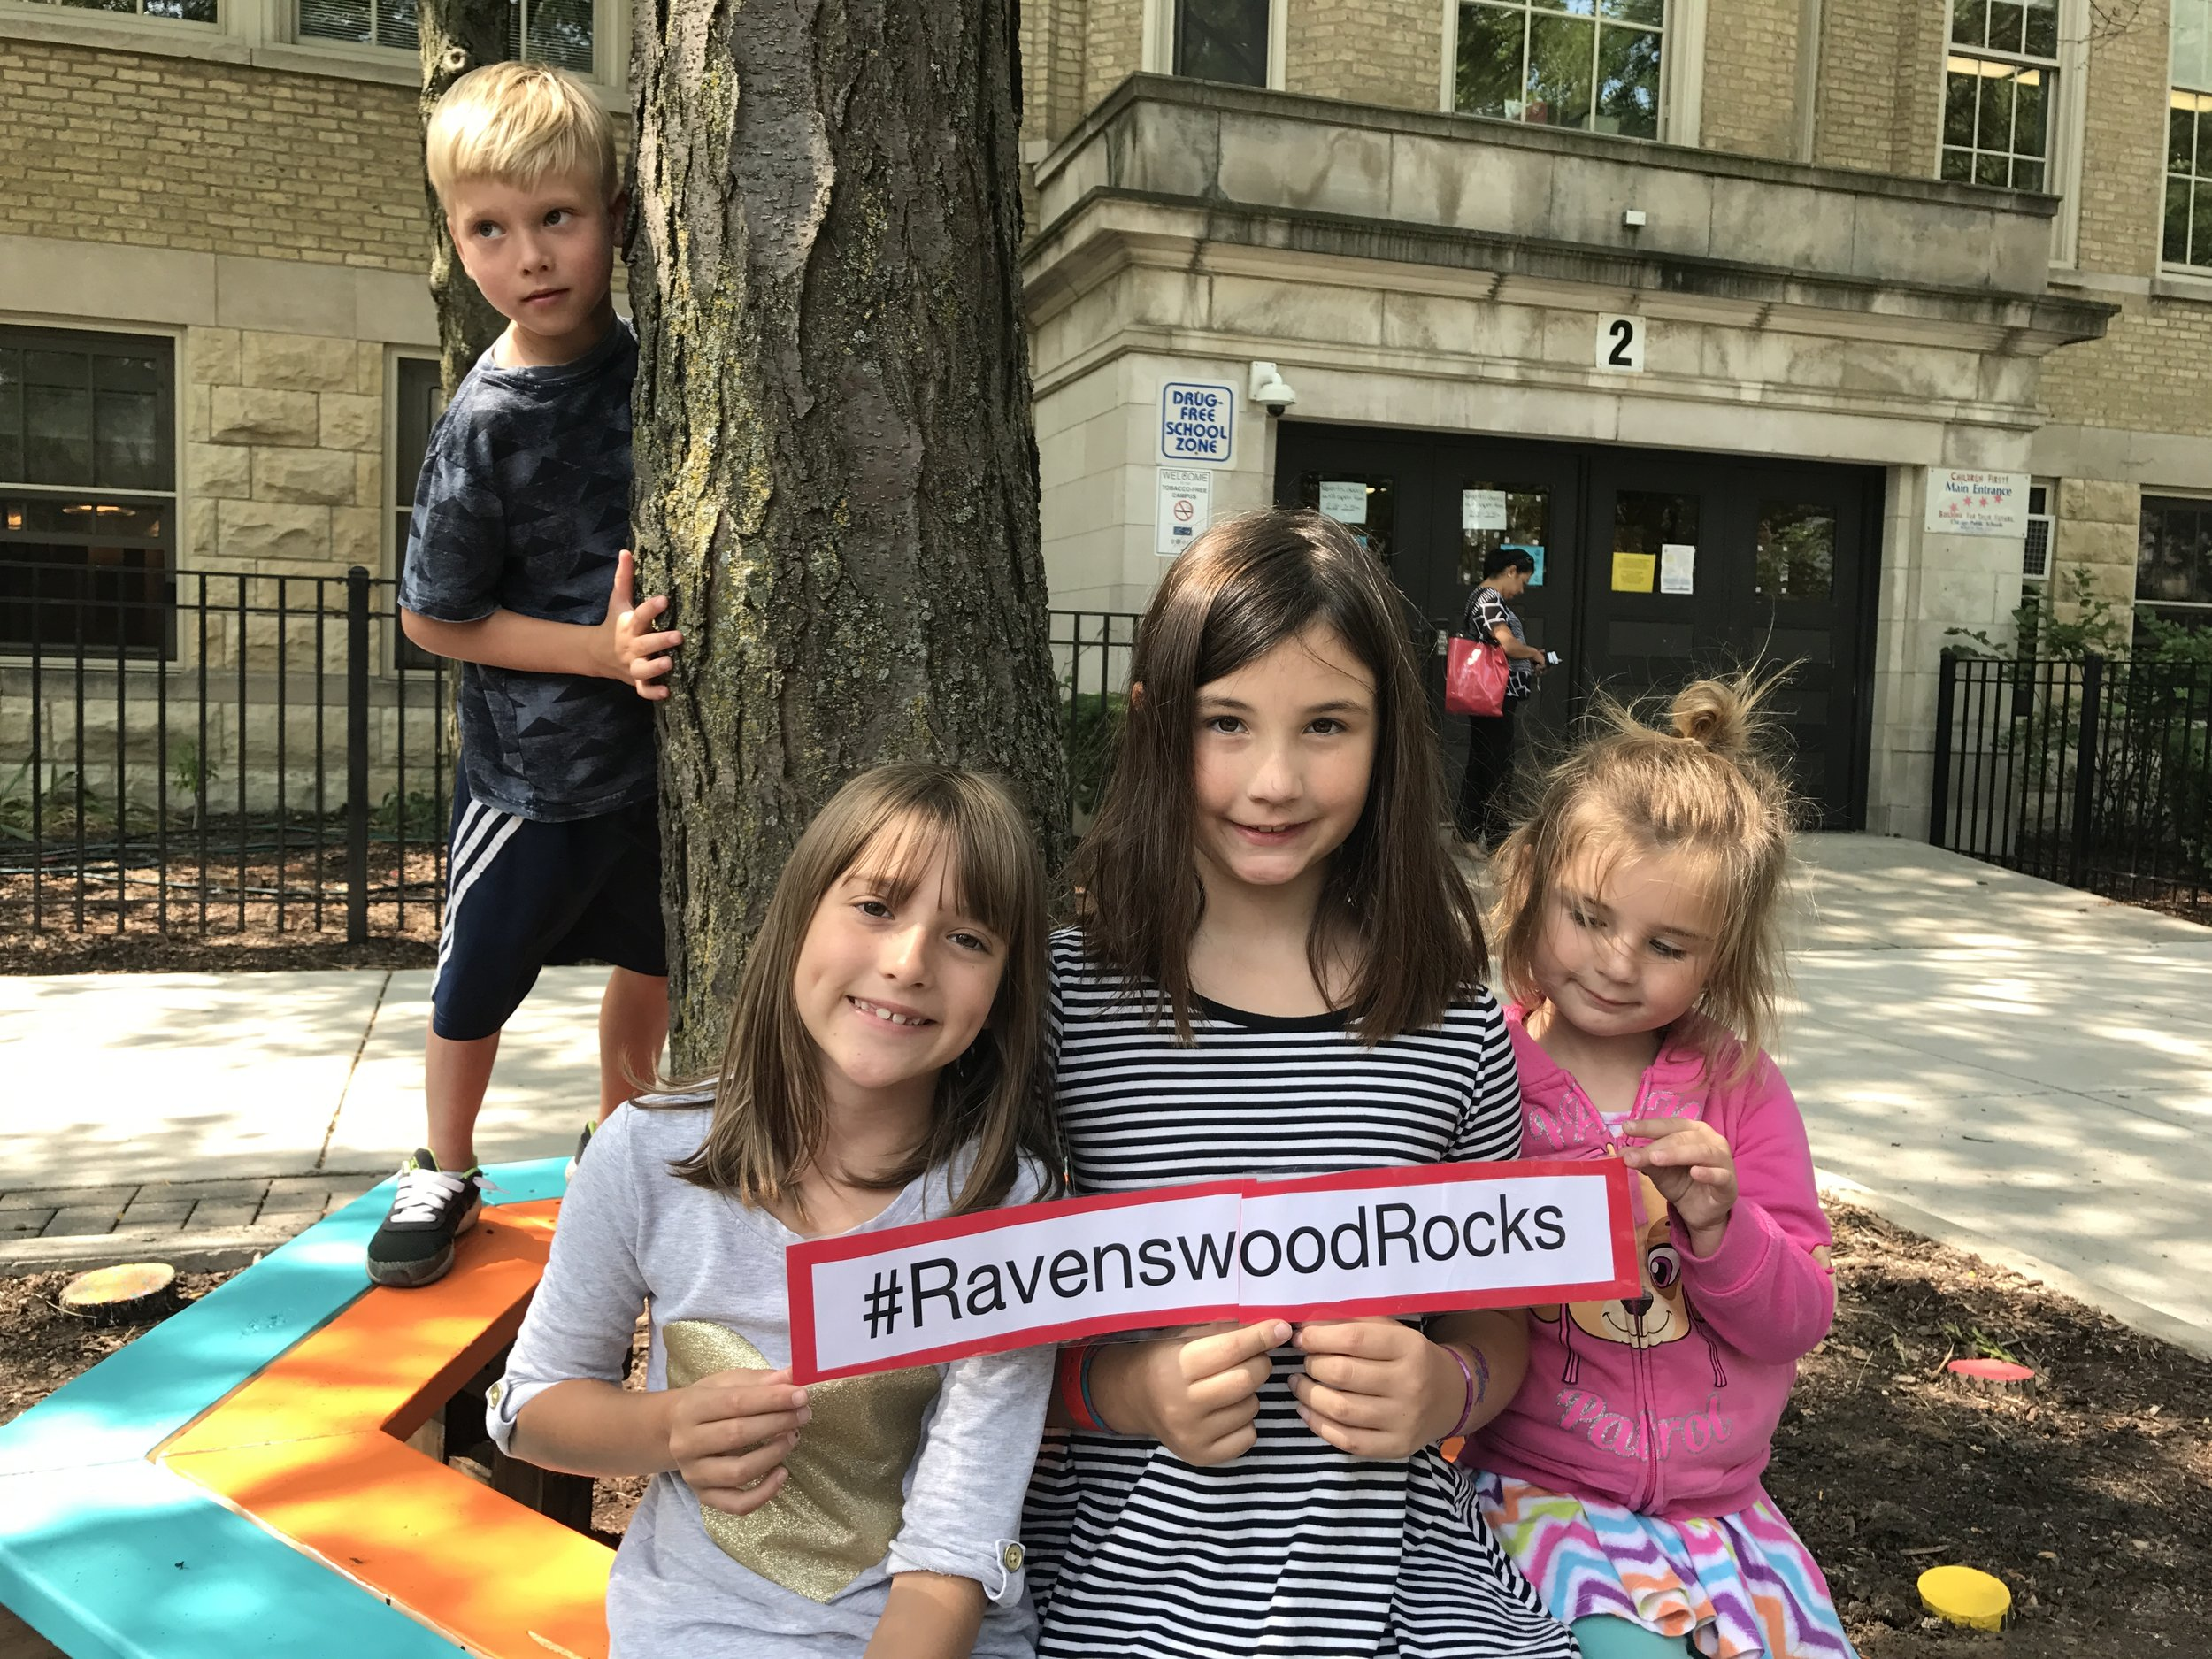 Students agree with our social media hashtag: #RavenswoodRocks!